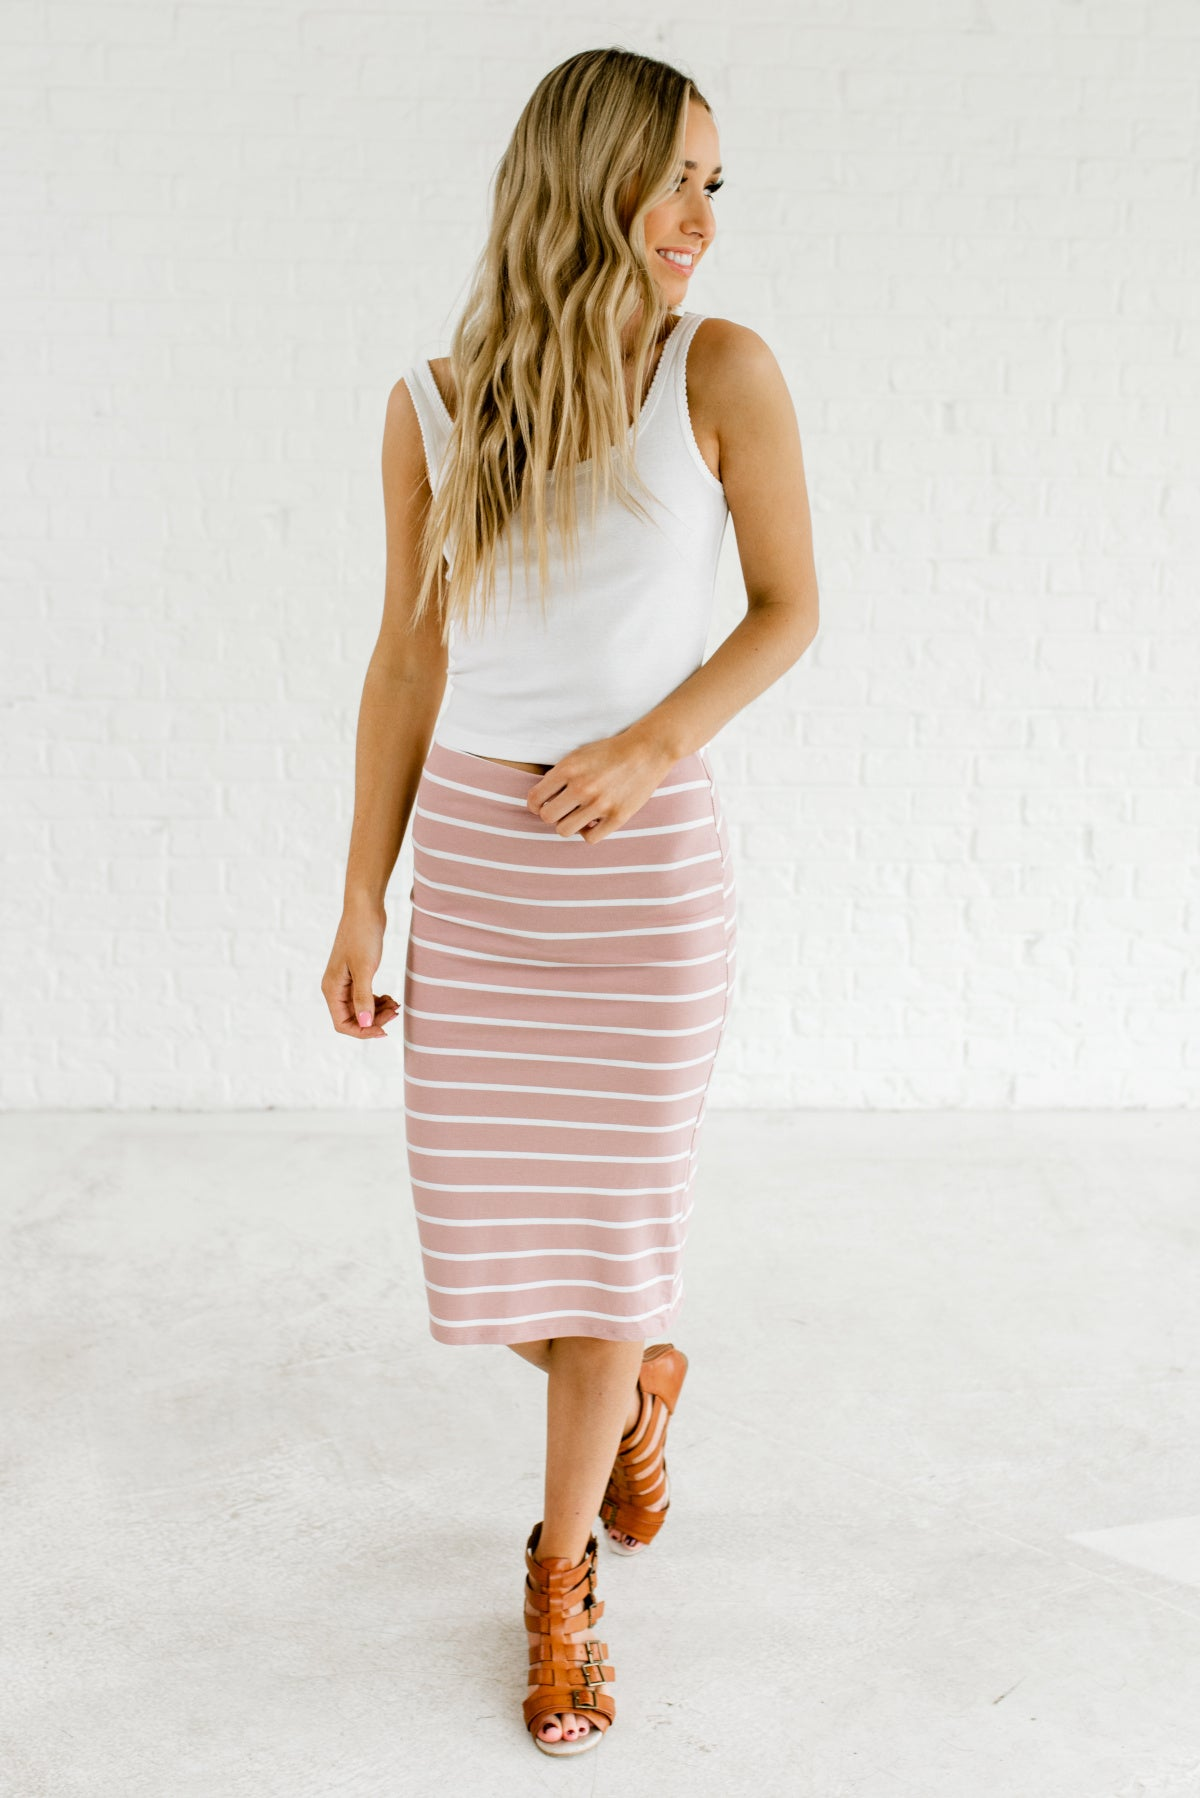 07894b8429 Light Mauve Pink and White Cute Boutique Women's Striped Skirt